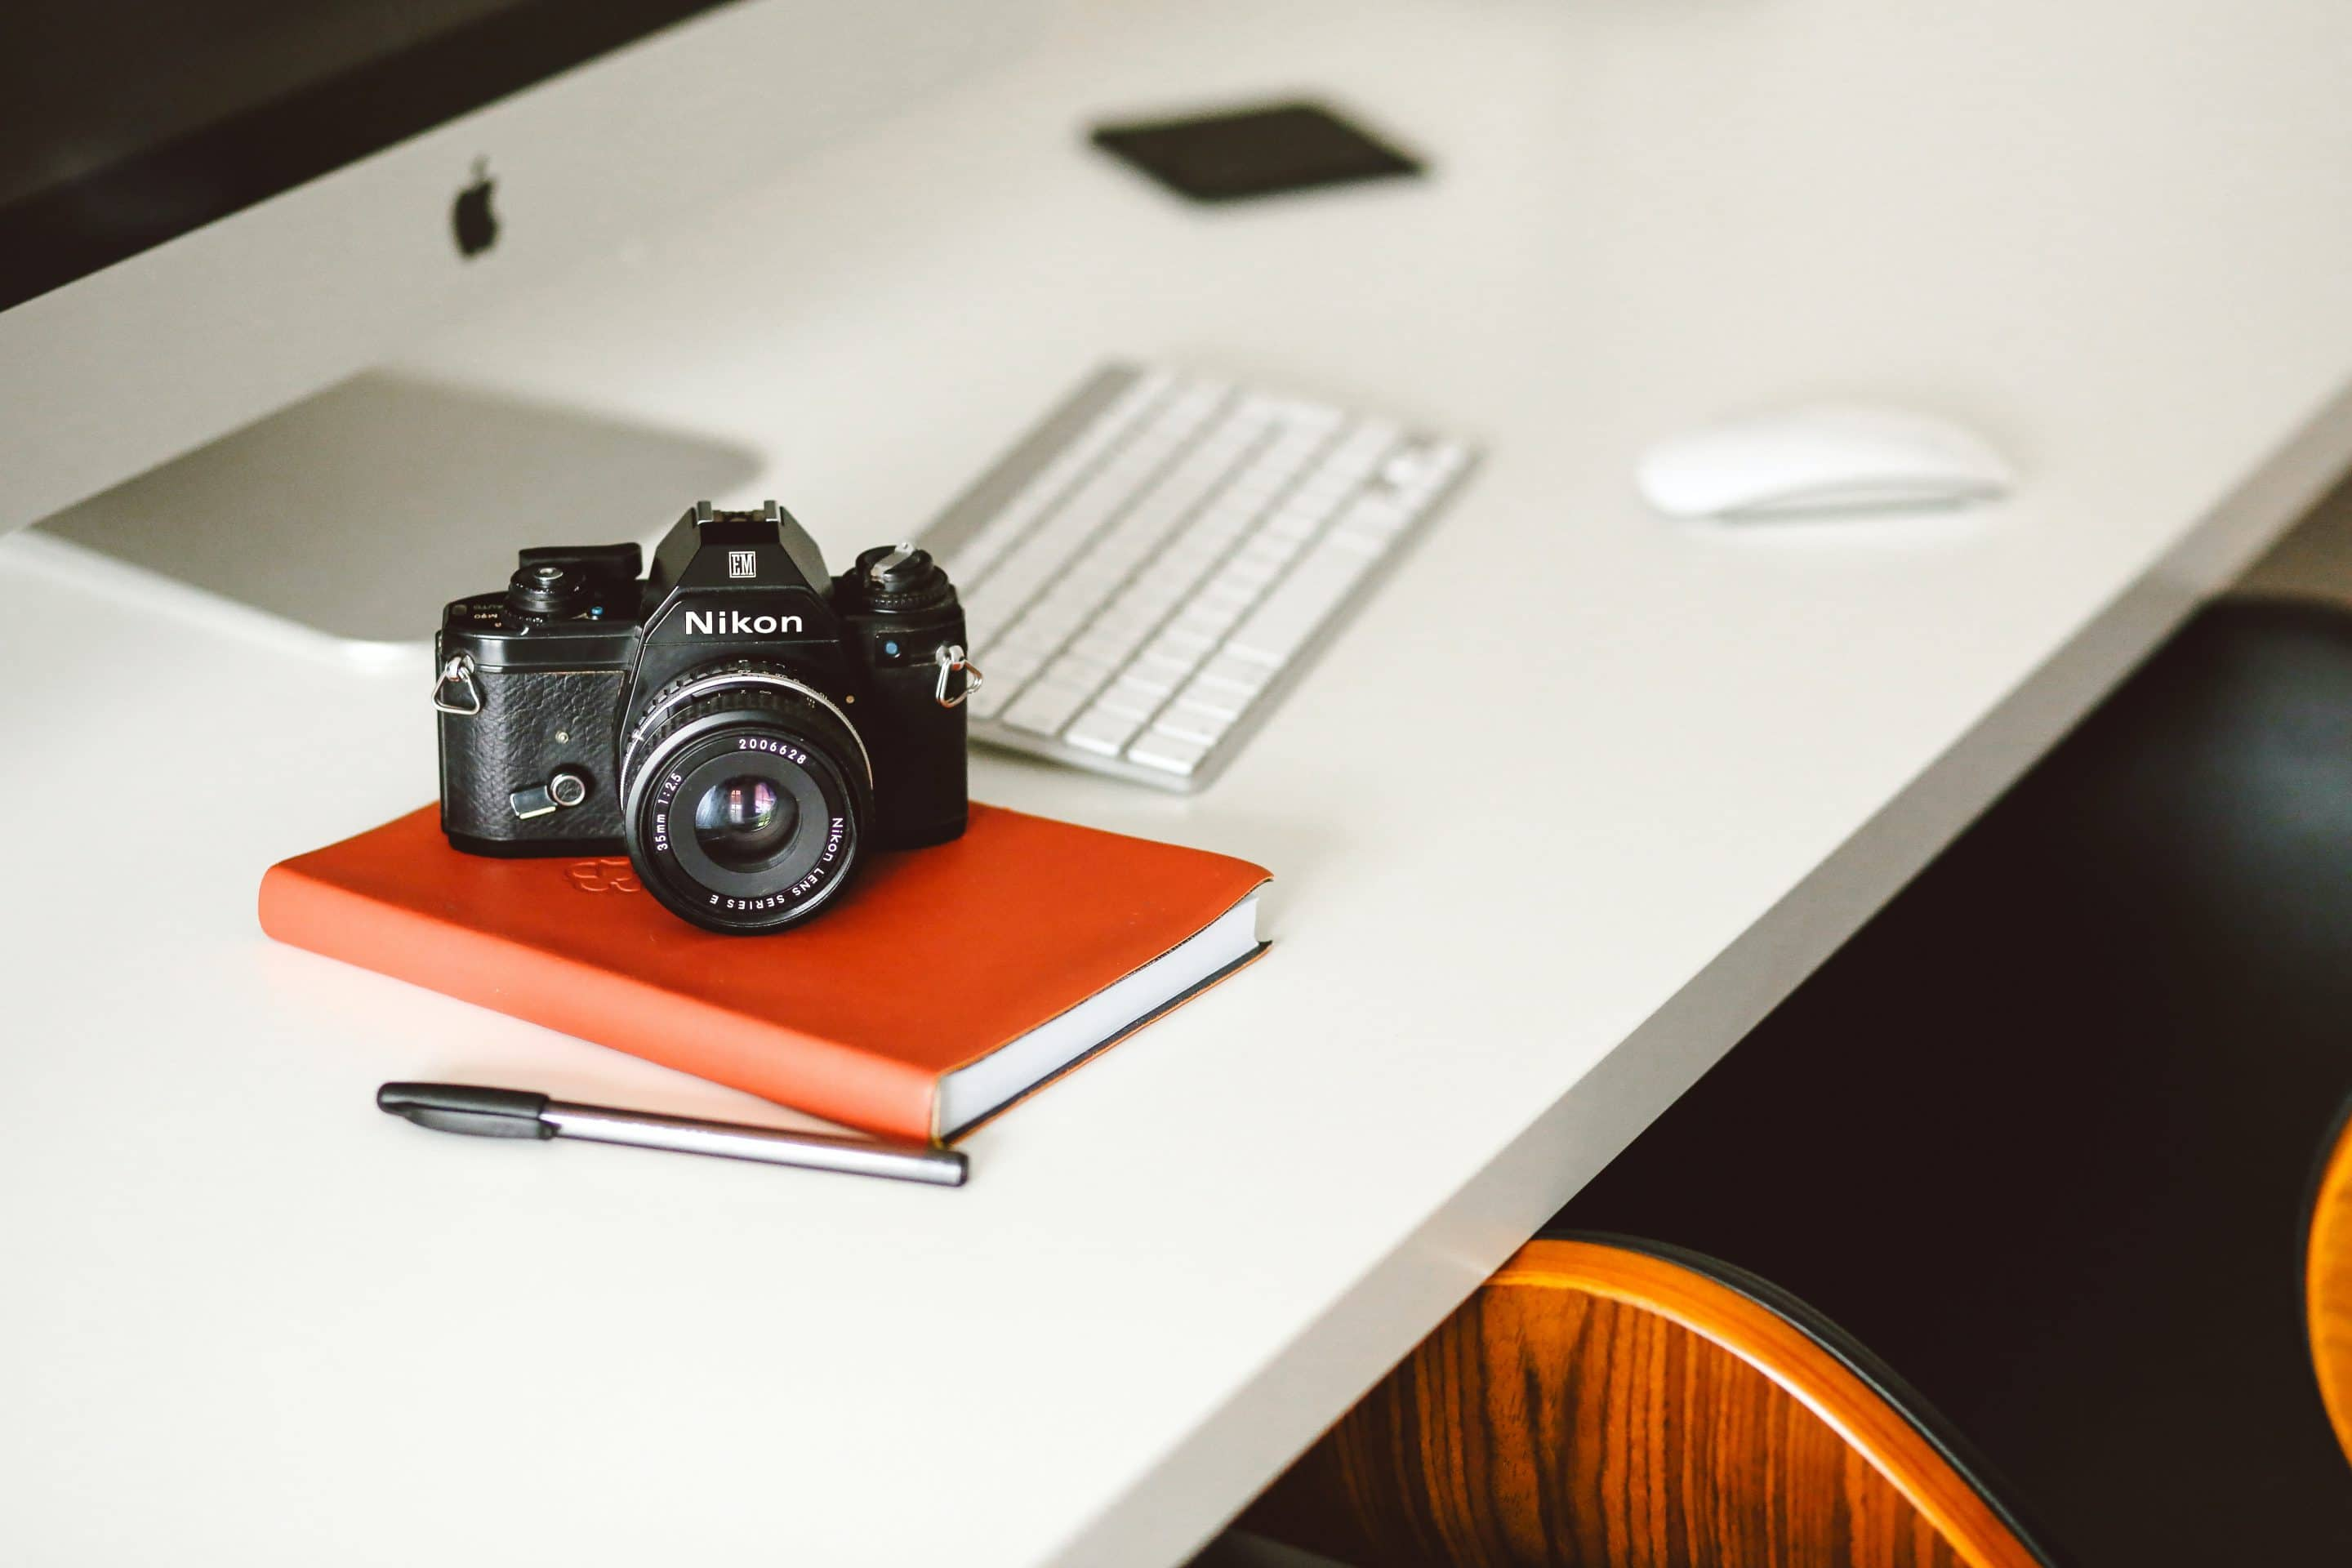 an image of a camera and computer from unsplash